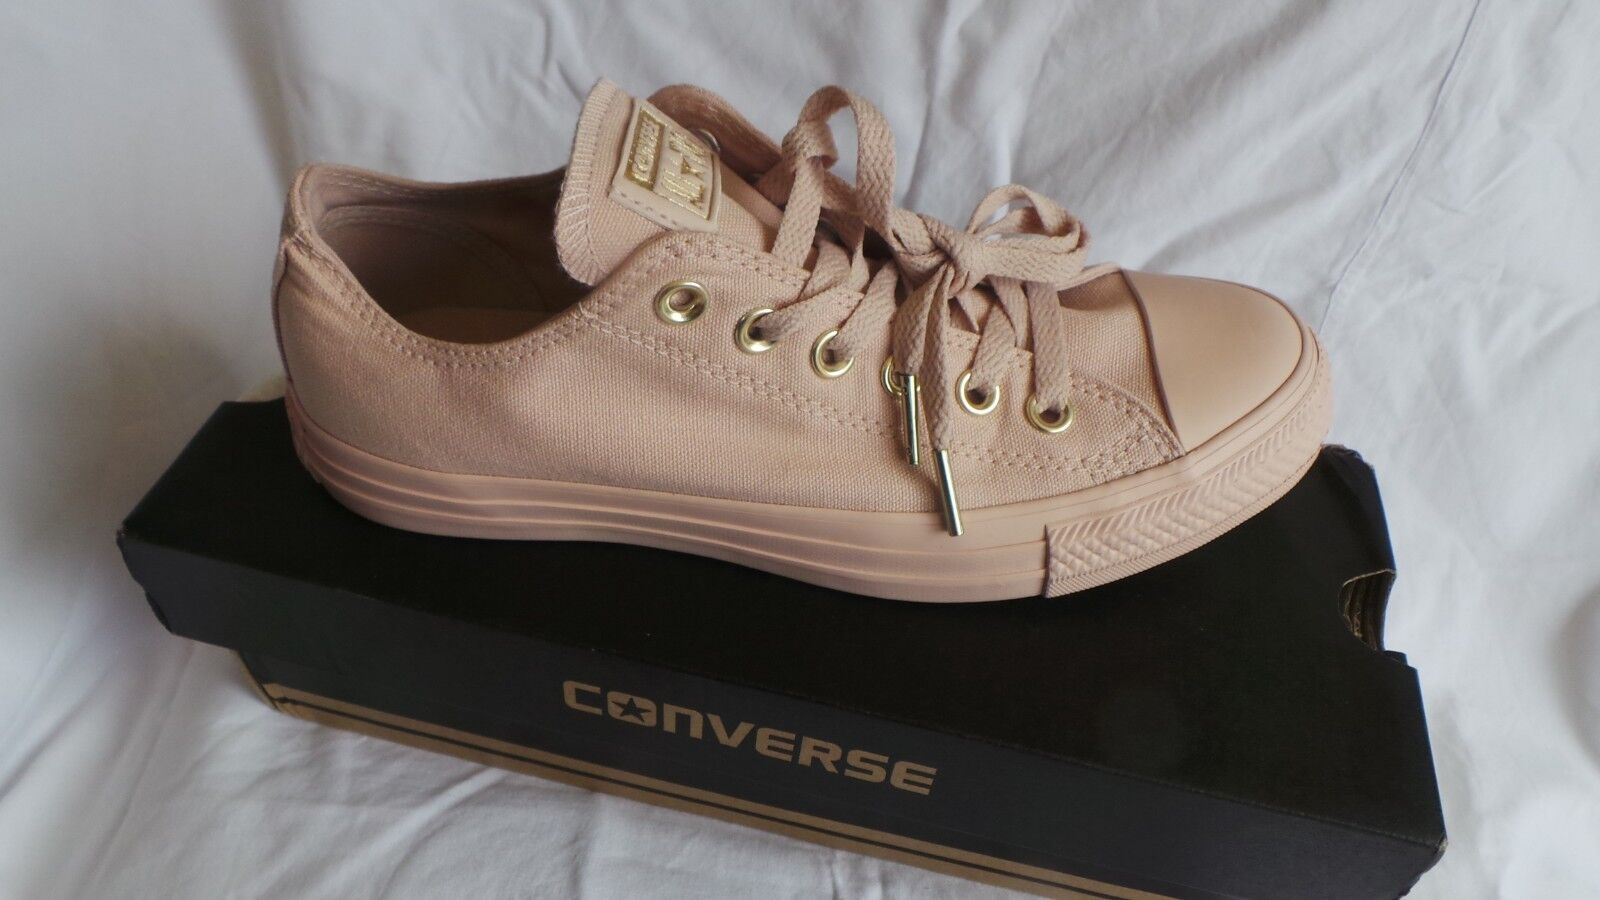 Brand New in box Converse Chuck Taylor All Star Mono Glam UK 6 EU 39 Particle be